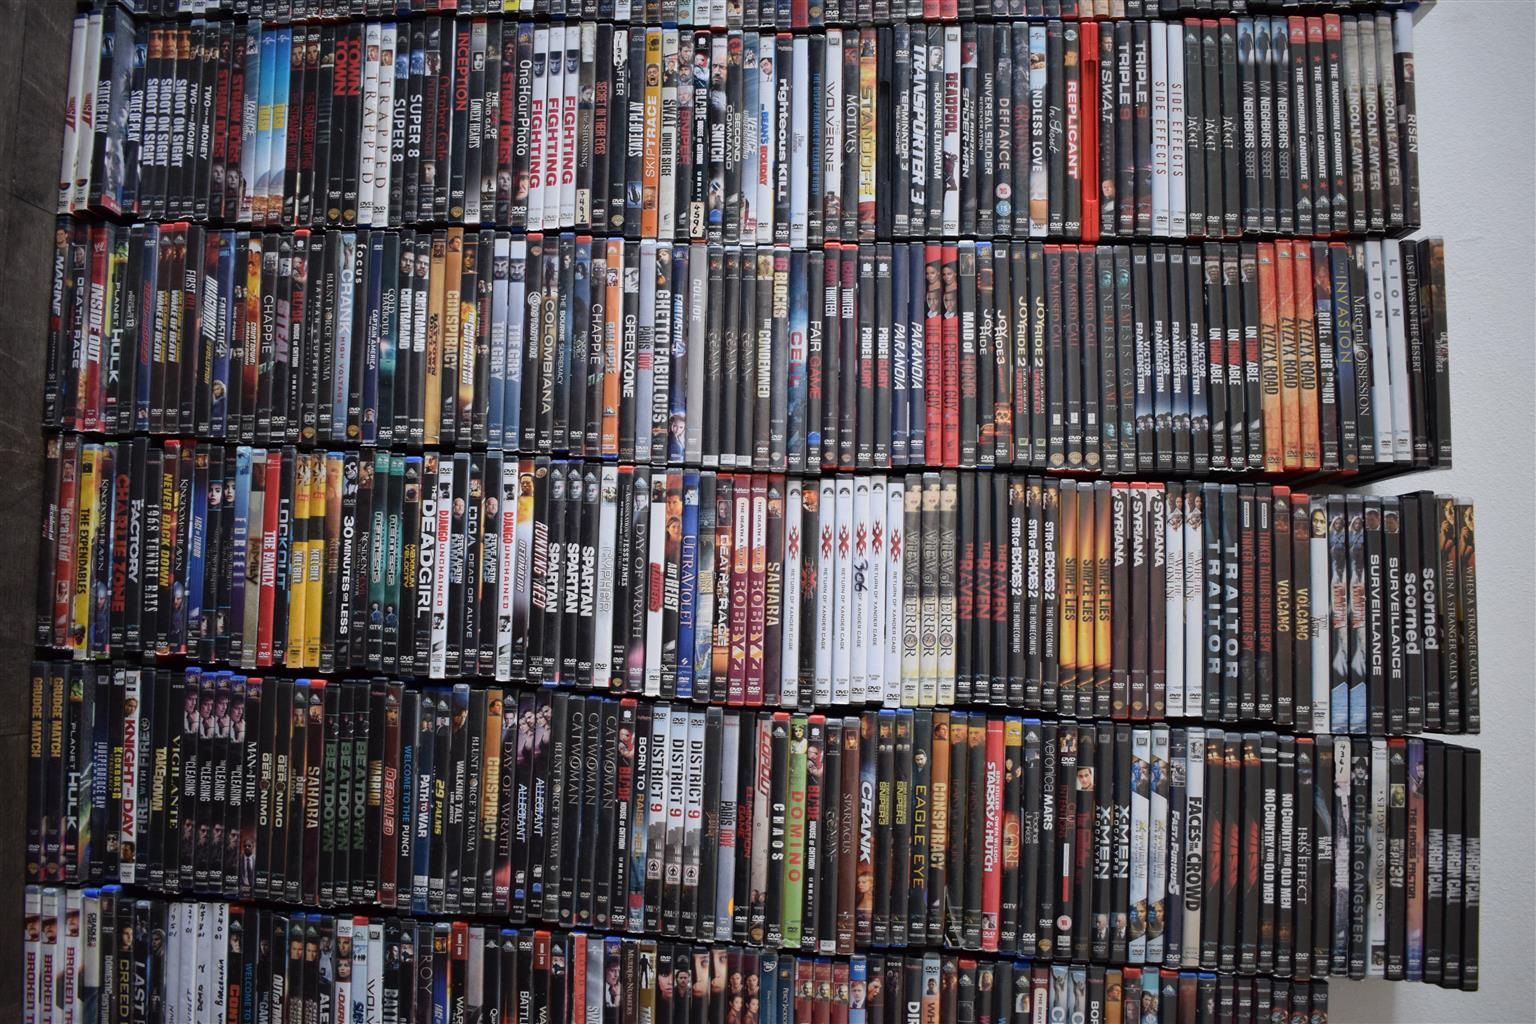 LAST CHANCE 12 600 Original DVDS Get Deals now before sell everything to cash crusaders